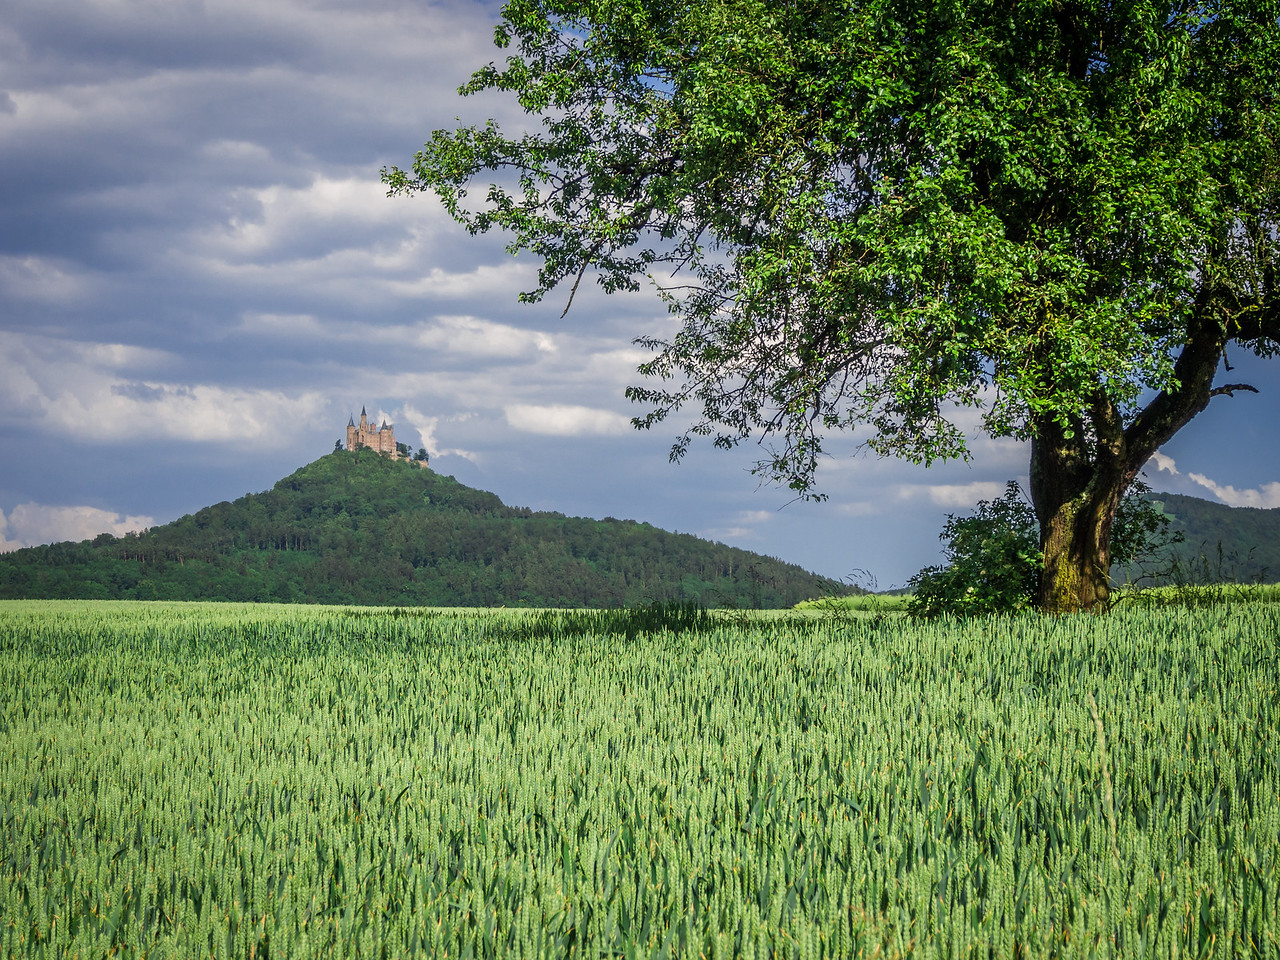 Hohenzollern Castle and Tree, Swabia